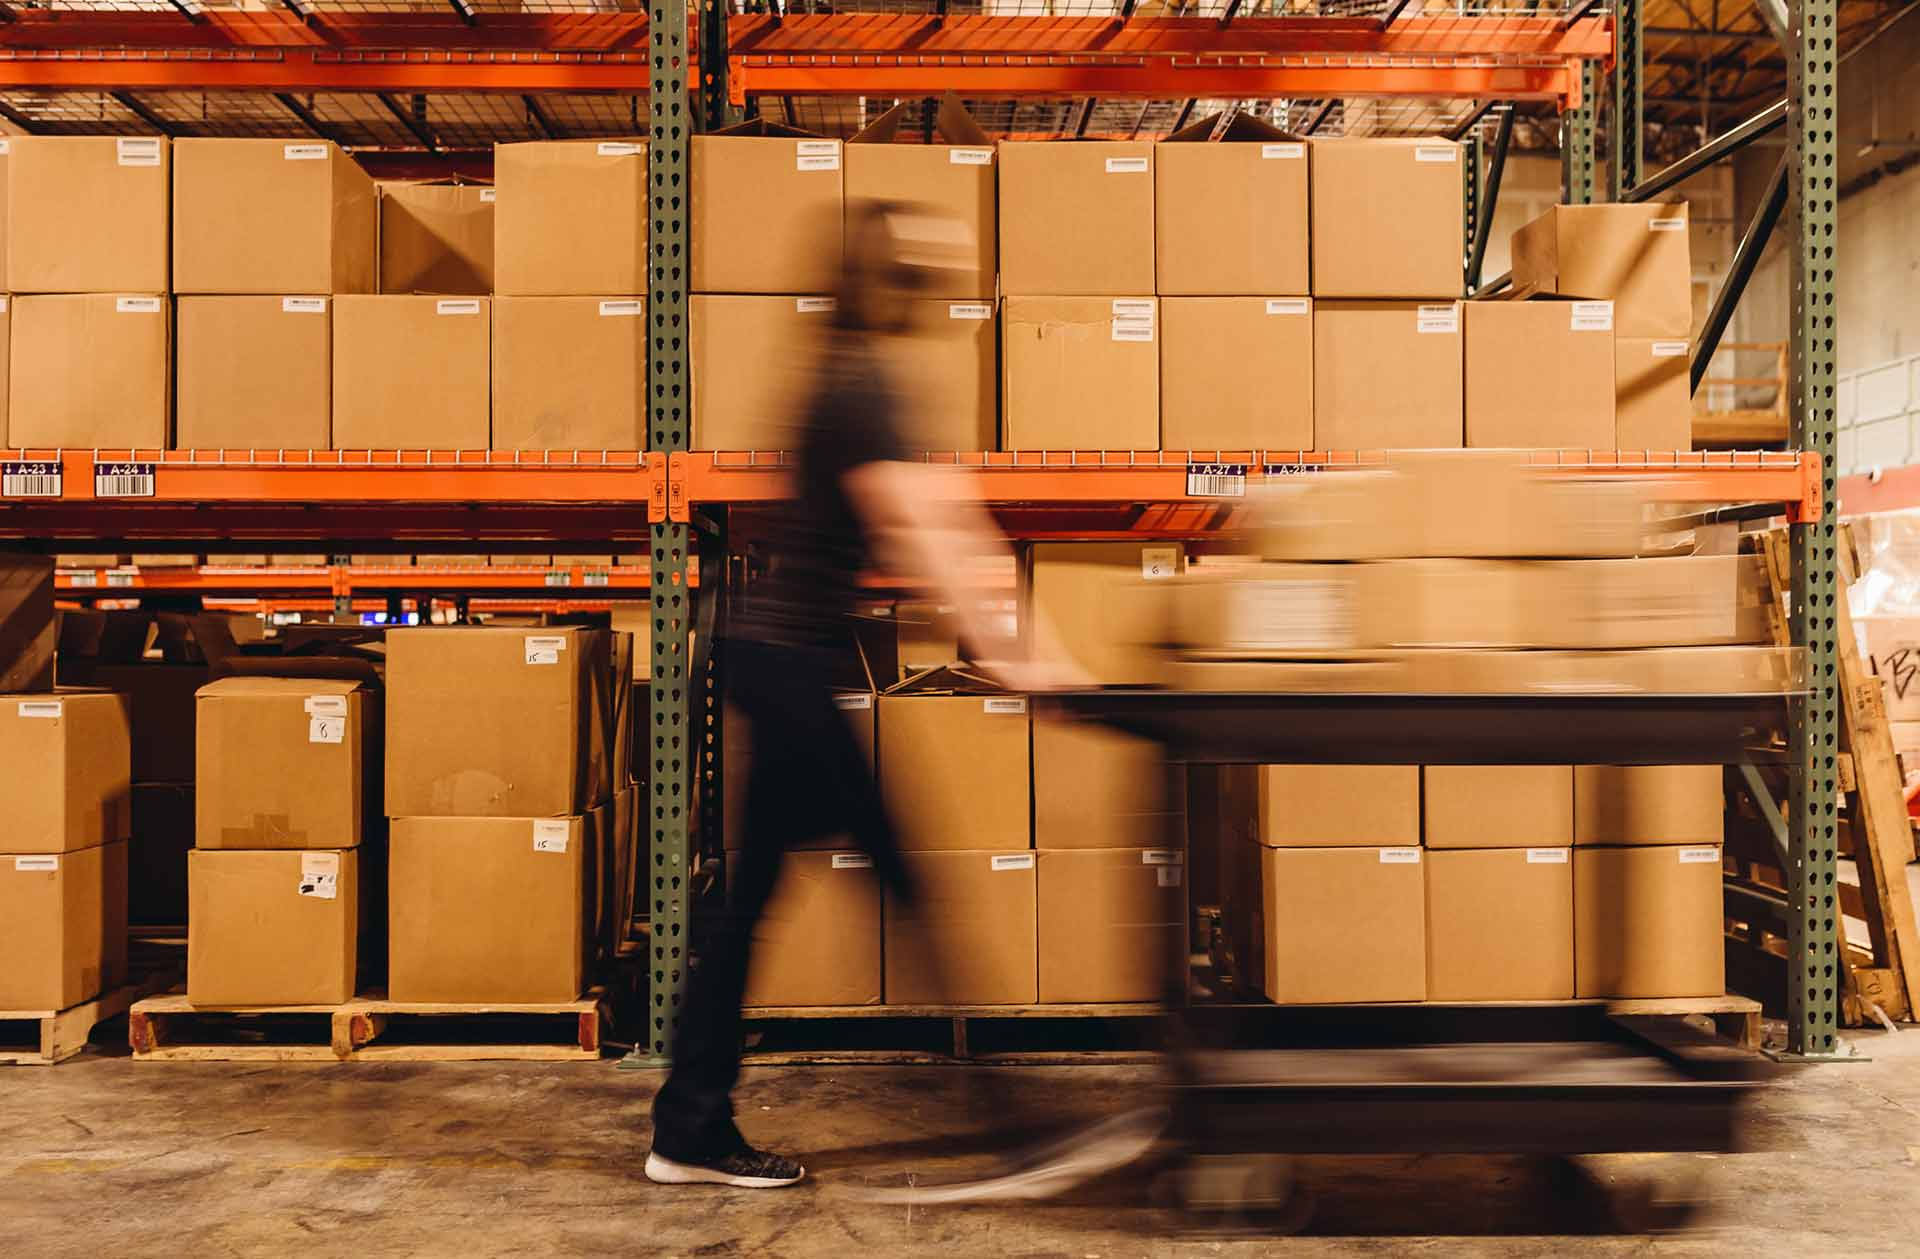 warehouse_worker_pushing_cart_quickly